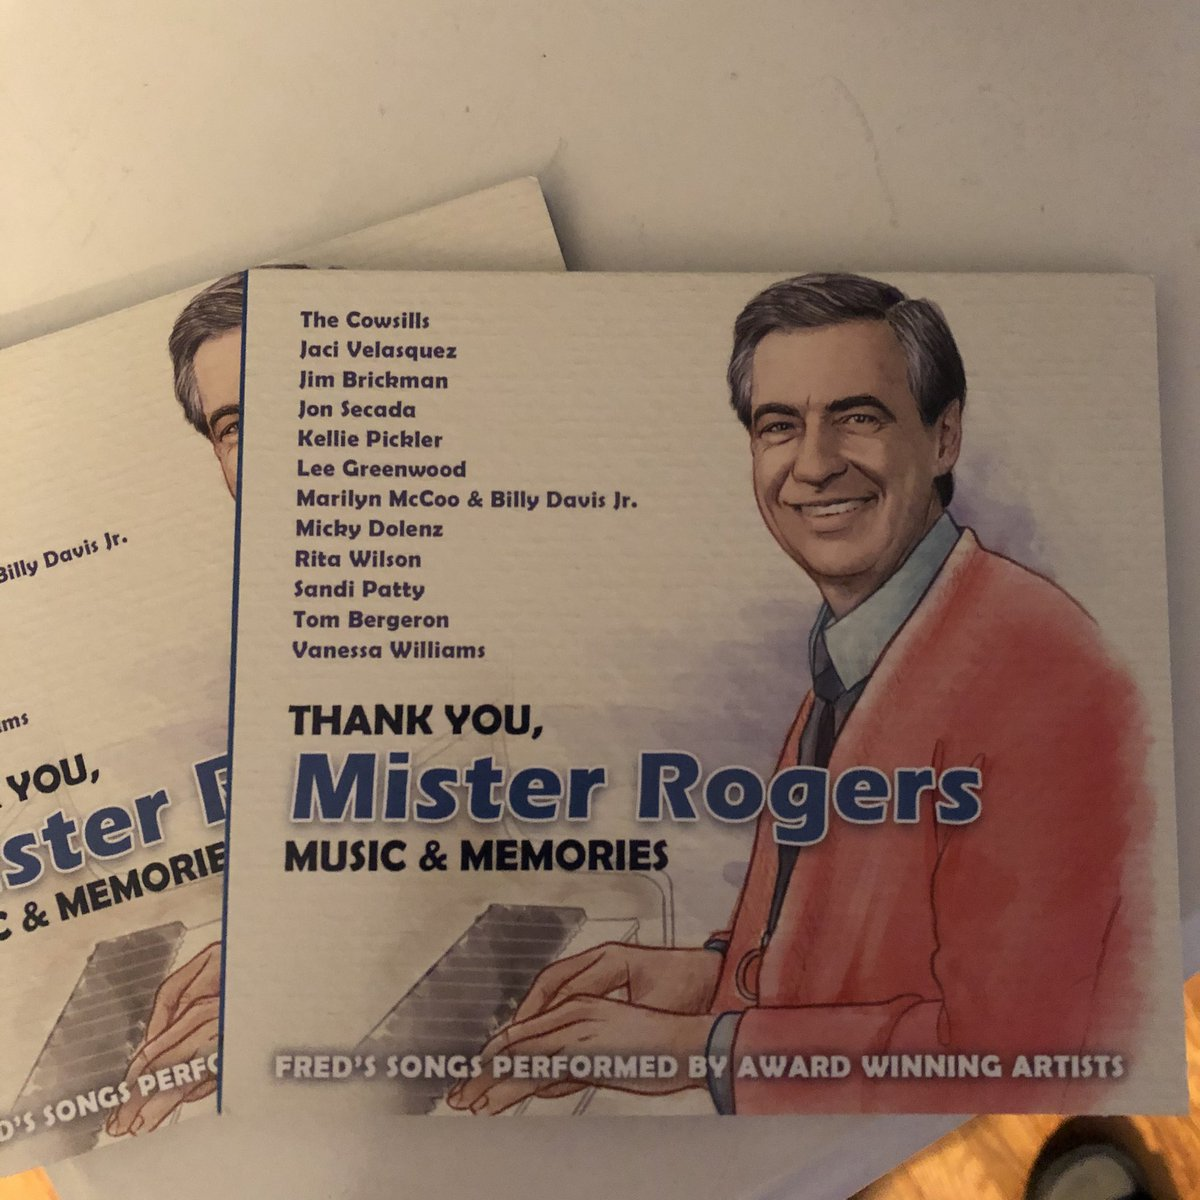 What a great album. My copies just arrived. #Thankyoumisterrogers